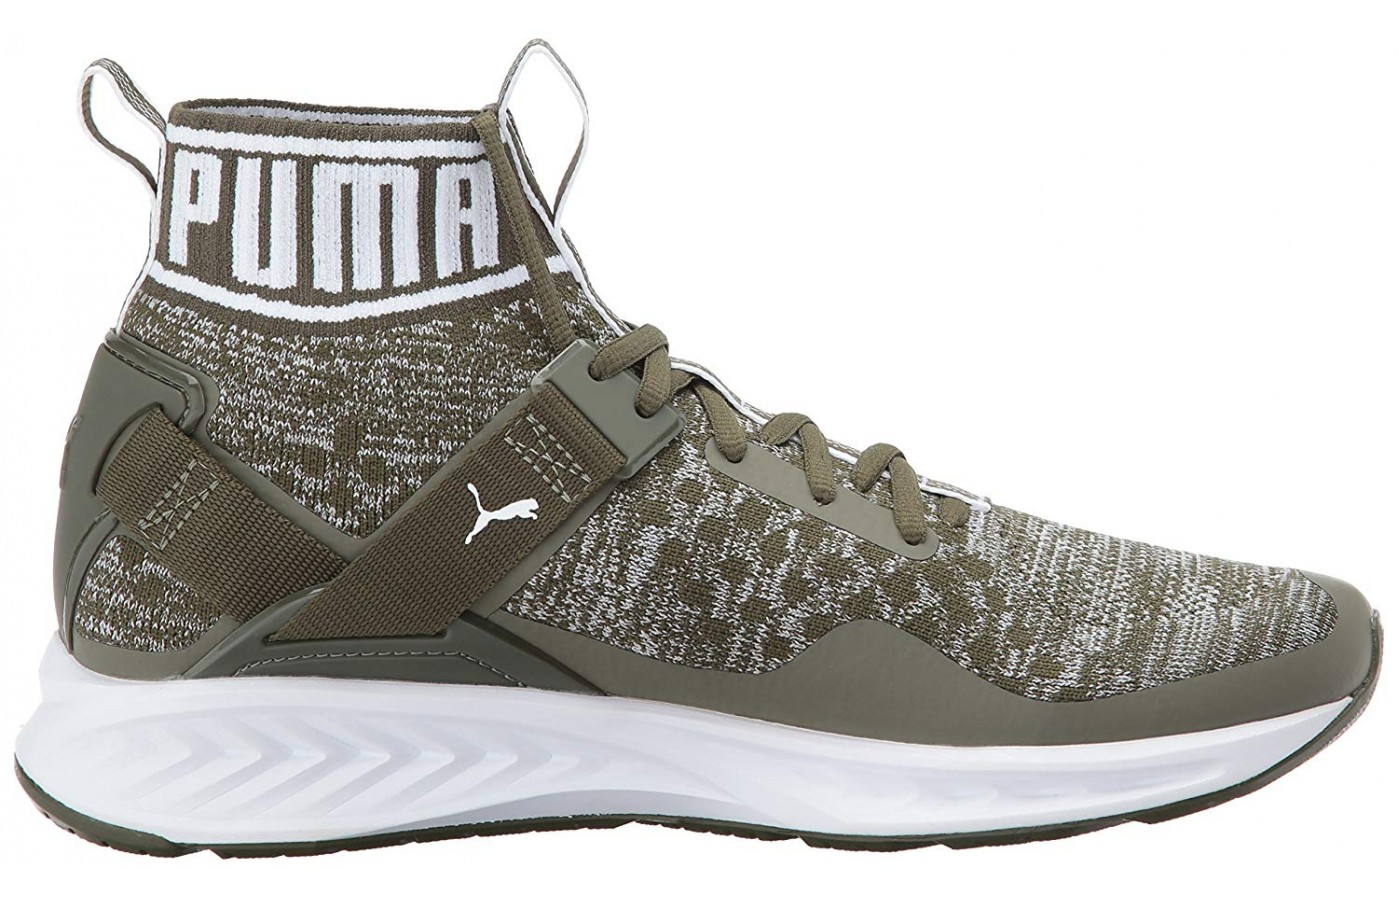 The Puma Ignite Evoknit is available in a variety of color patterns.